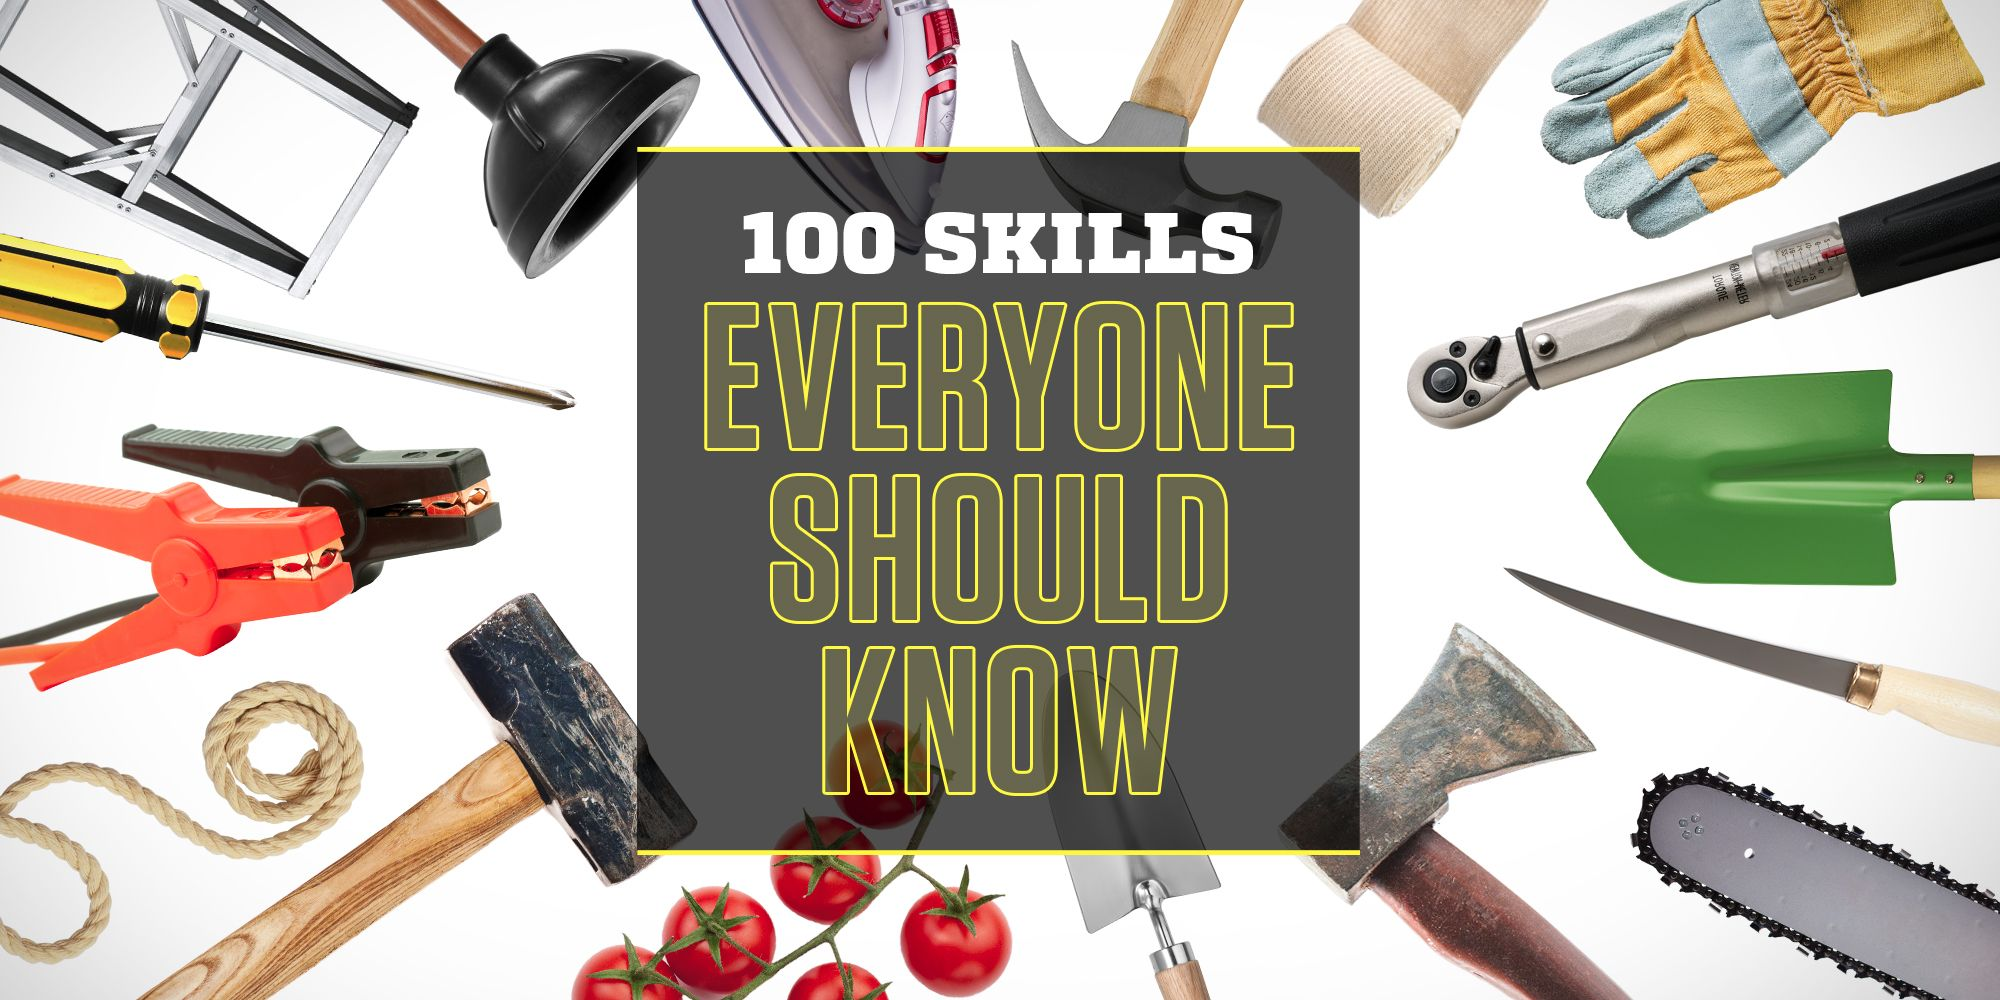 100 Skills Everyone Should Know